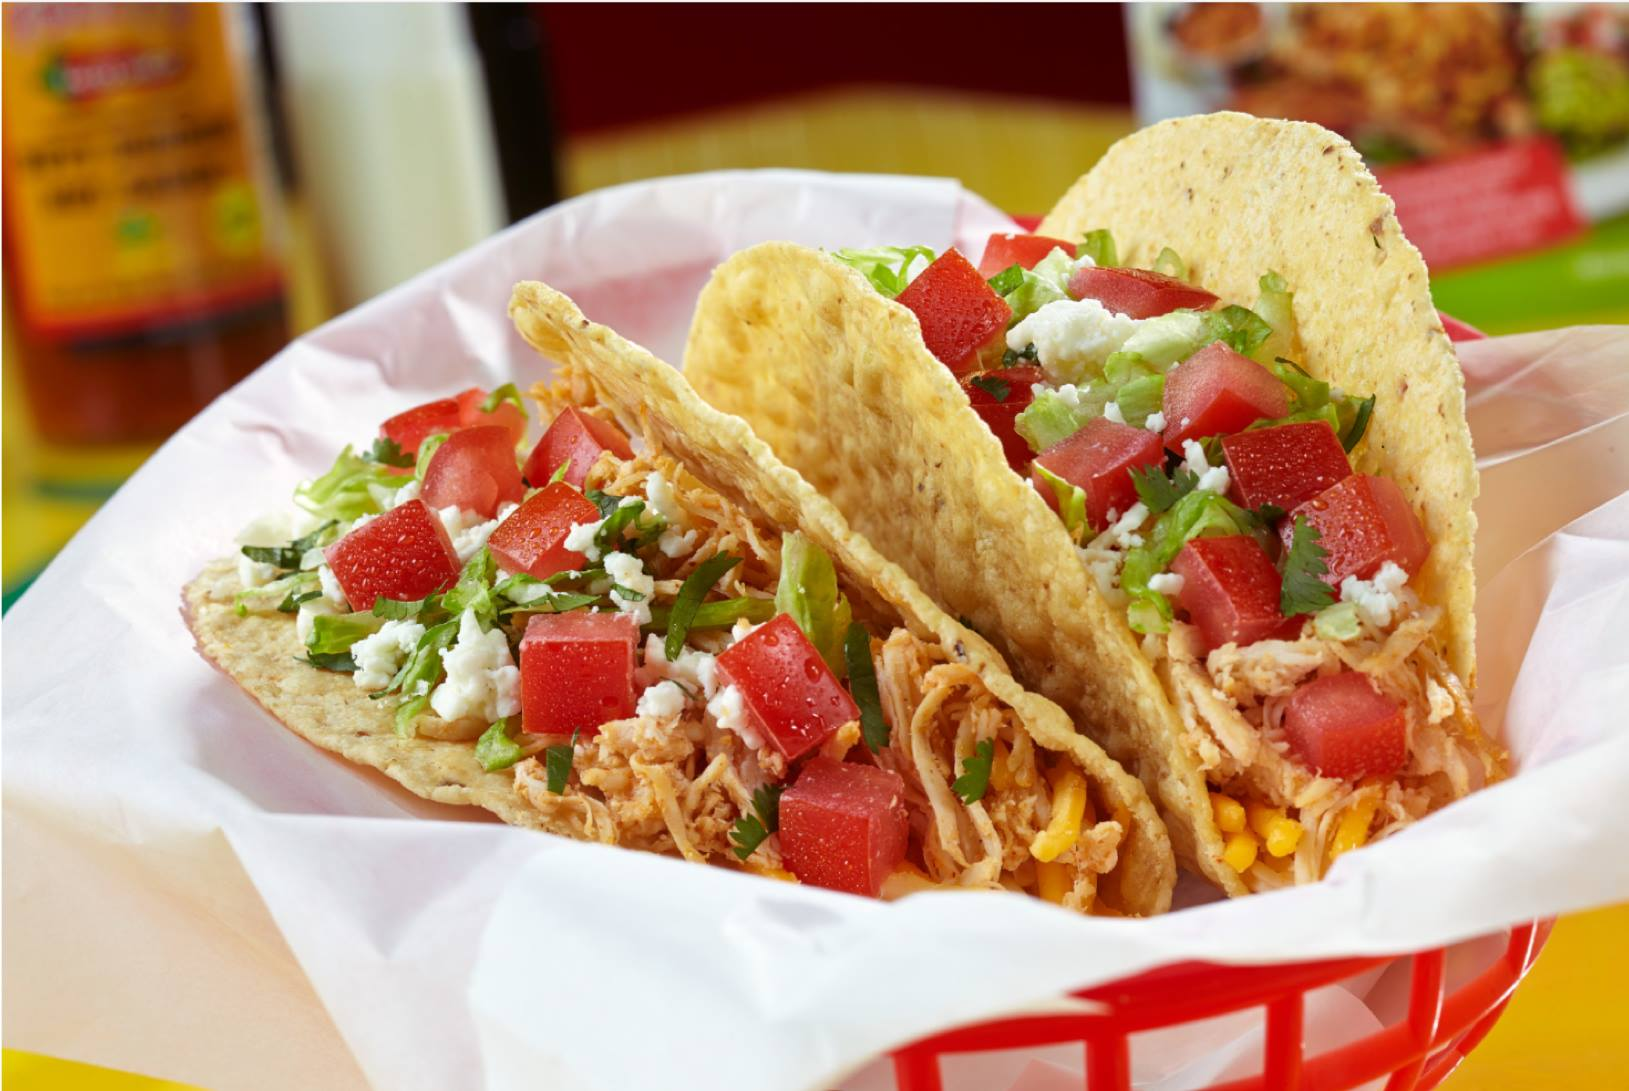 National Taco Day Free Food and Deals 2018 – Fuzzy's Taco Shop